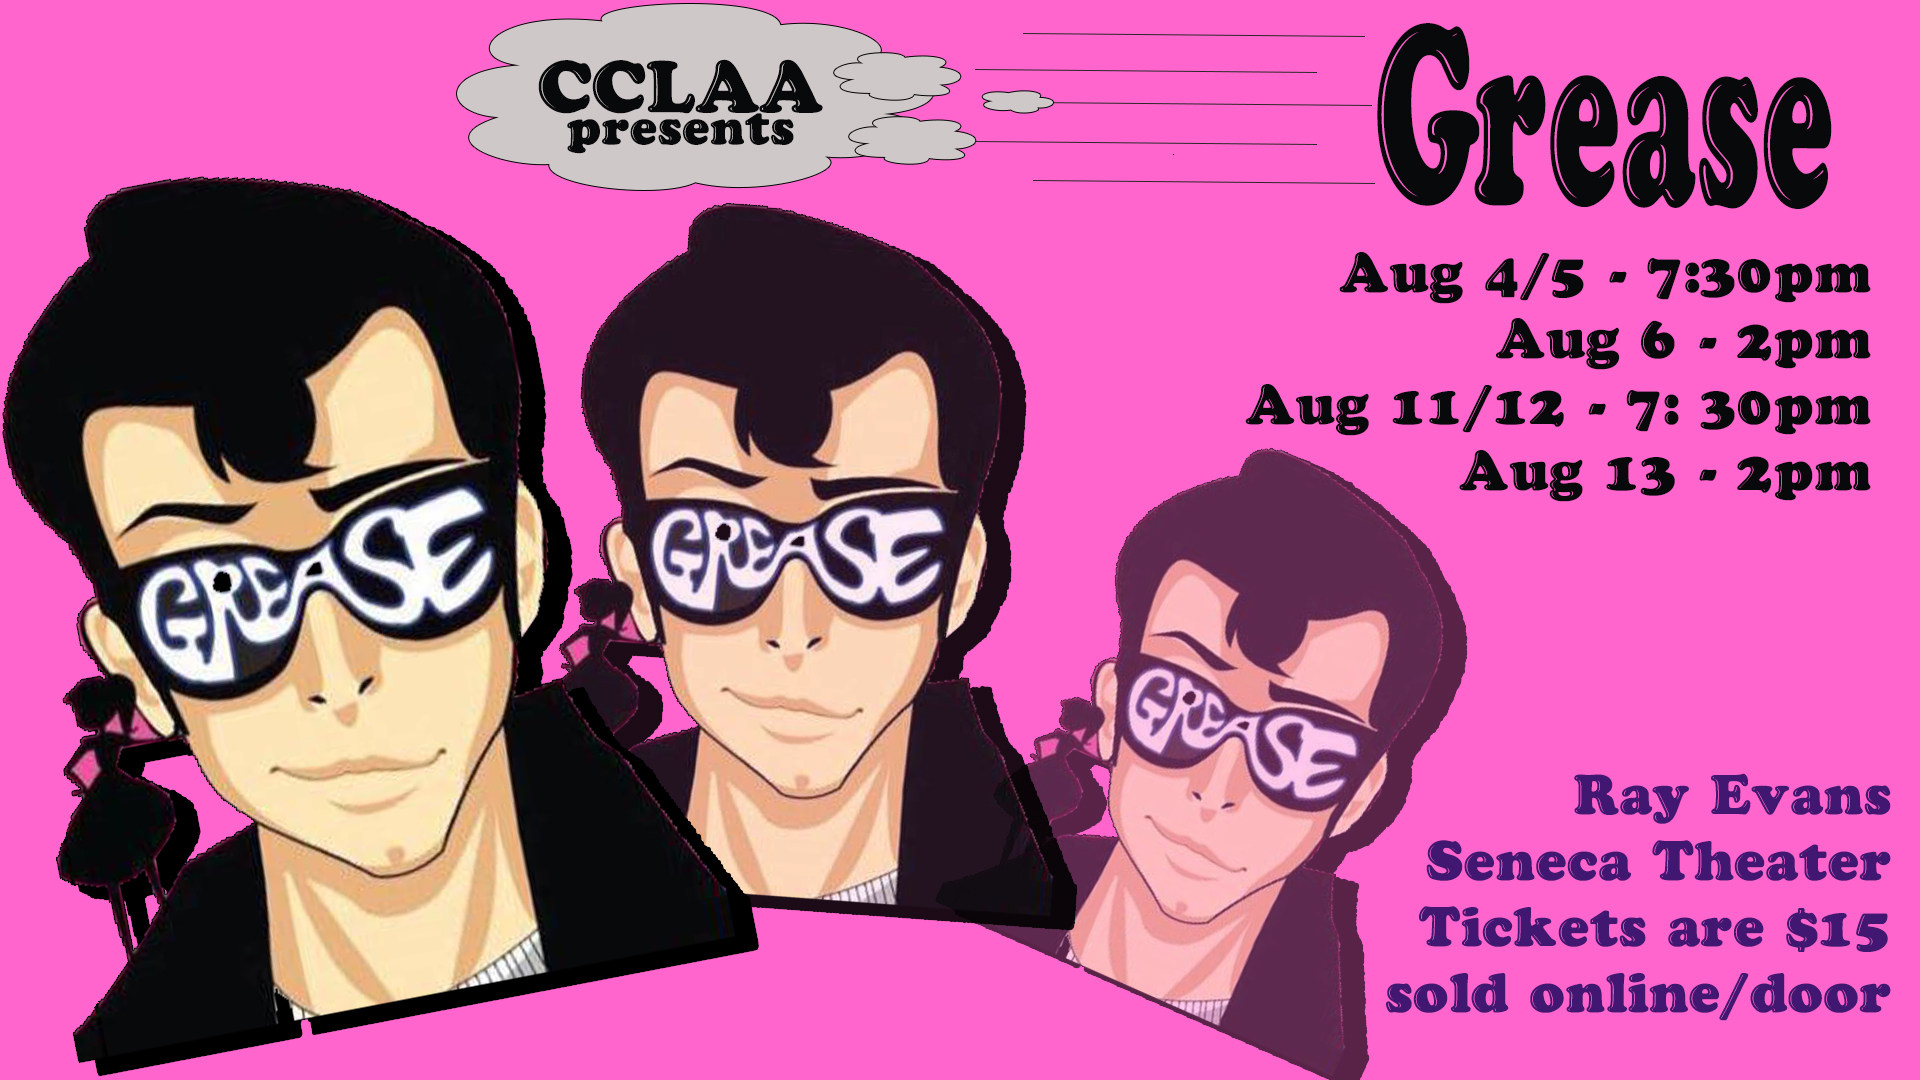 Grease at the Ray Evans Senecat Theater